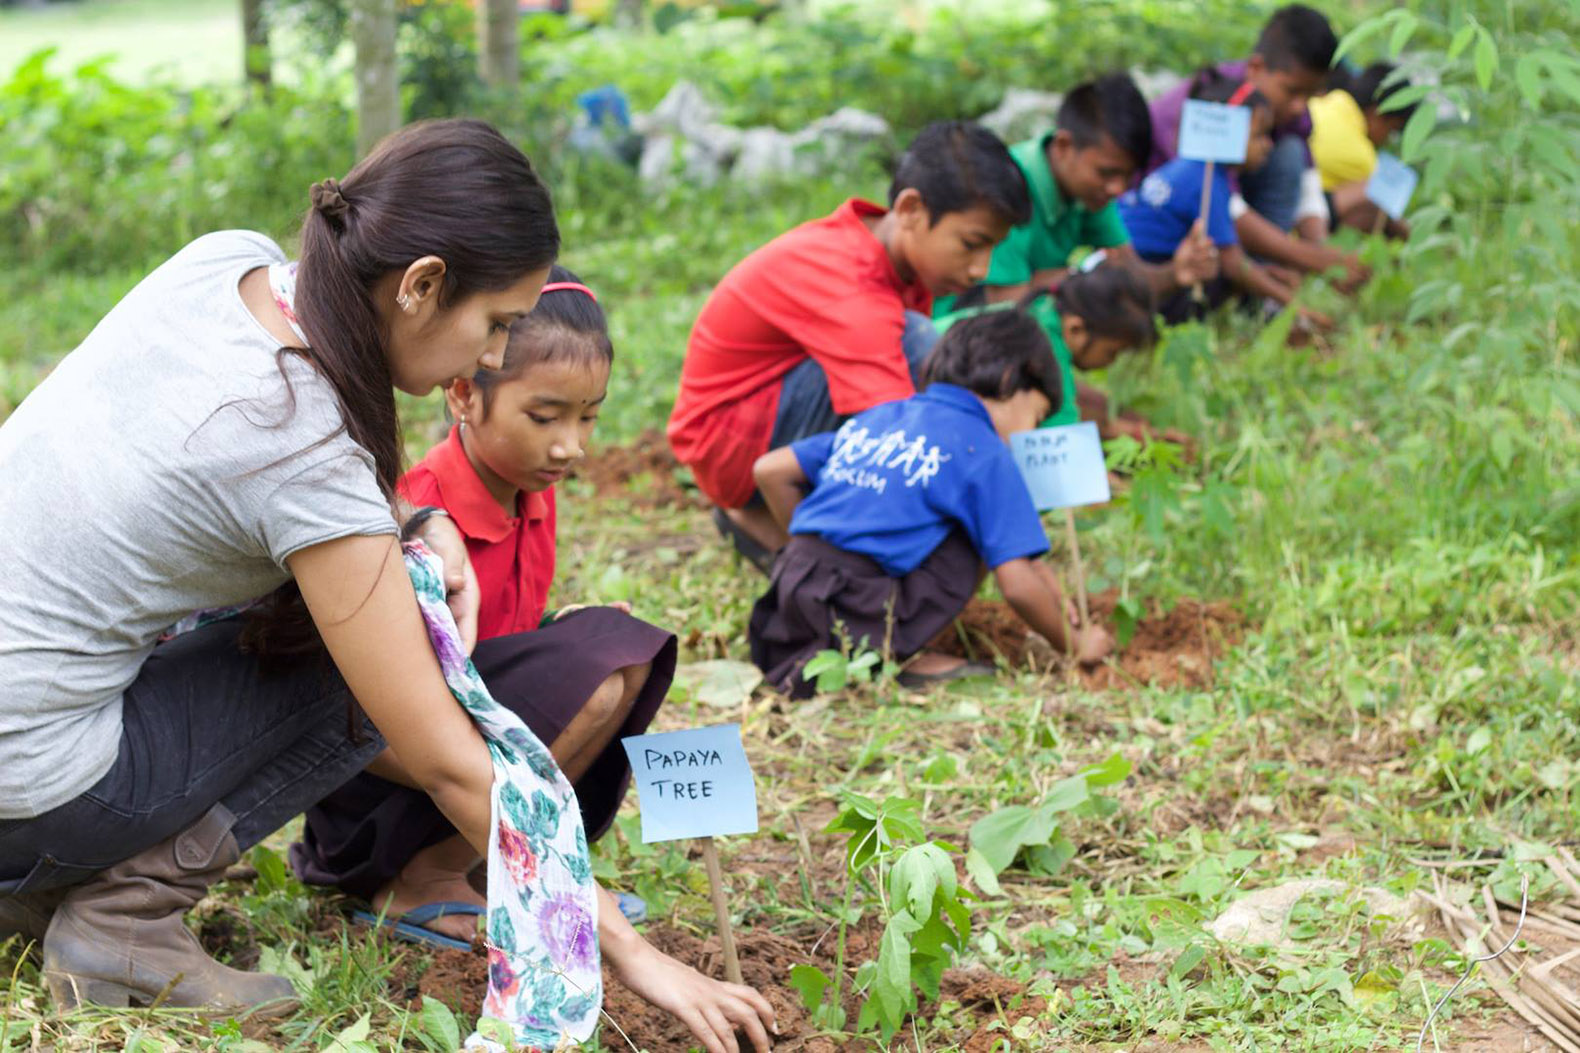 The Akshar Foundation is creating sustainable schools to teach children important life skills